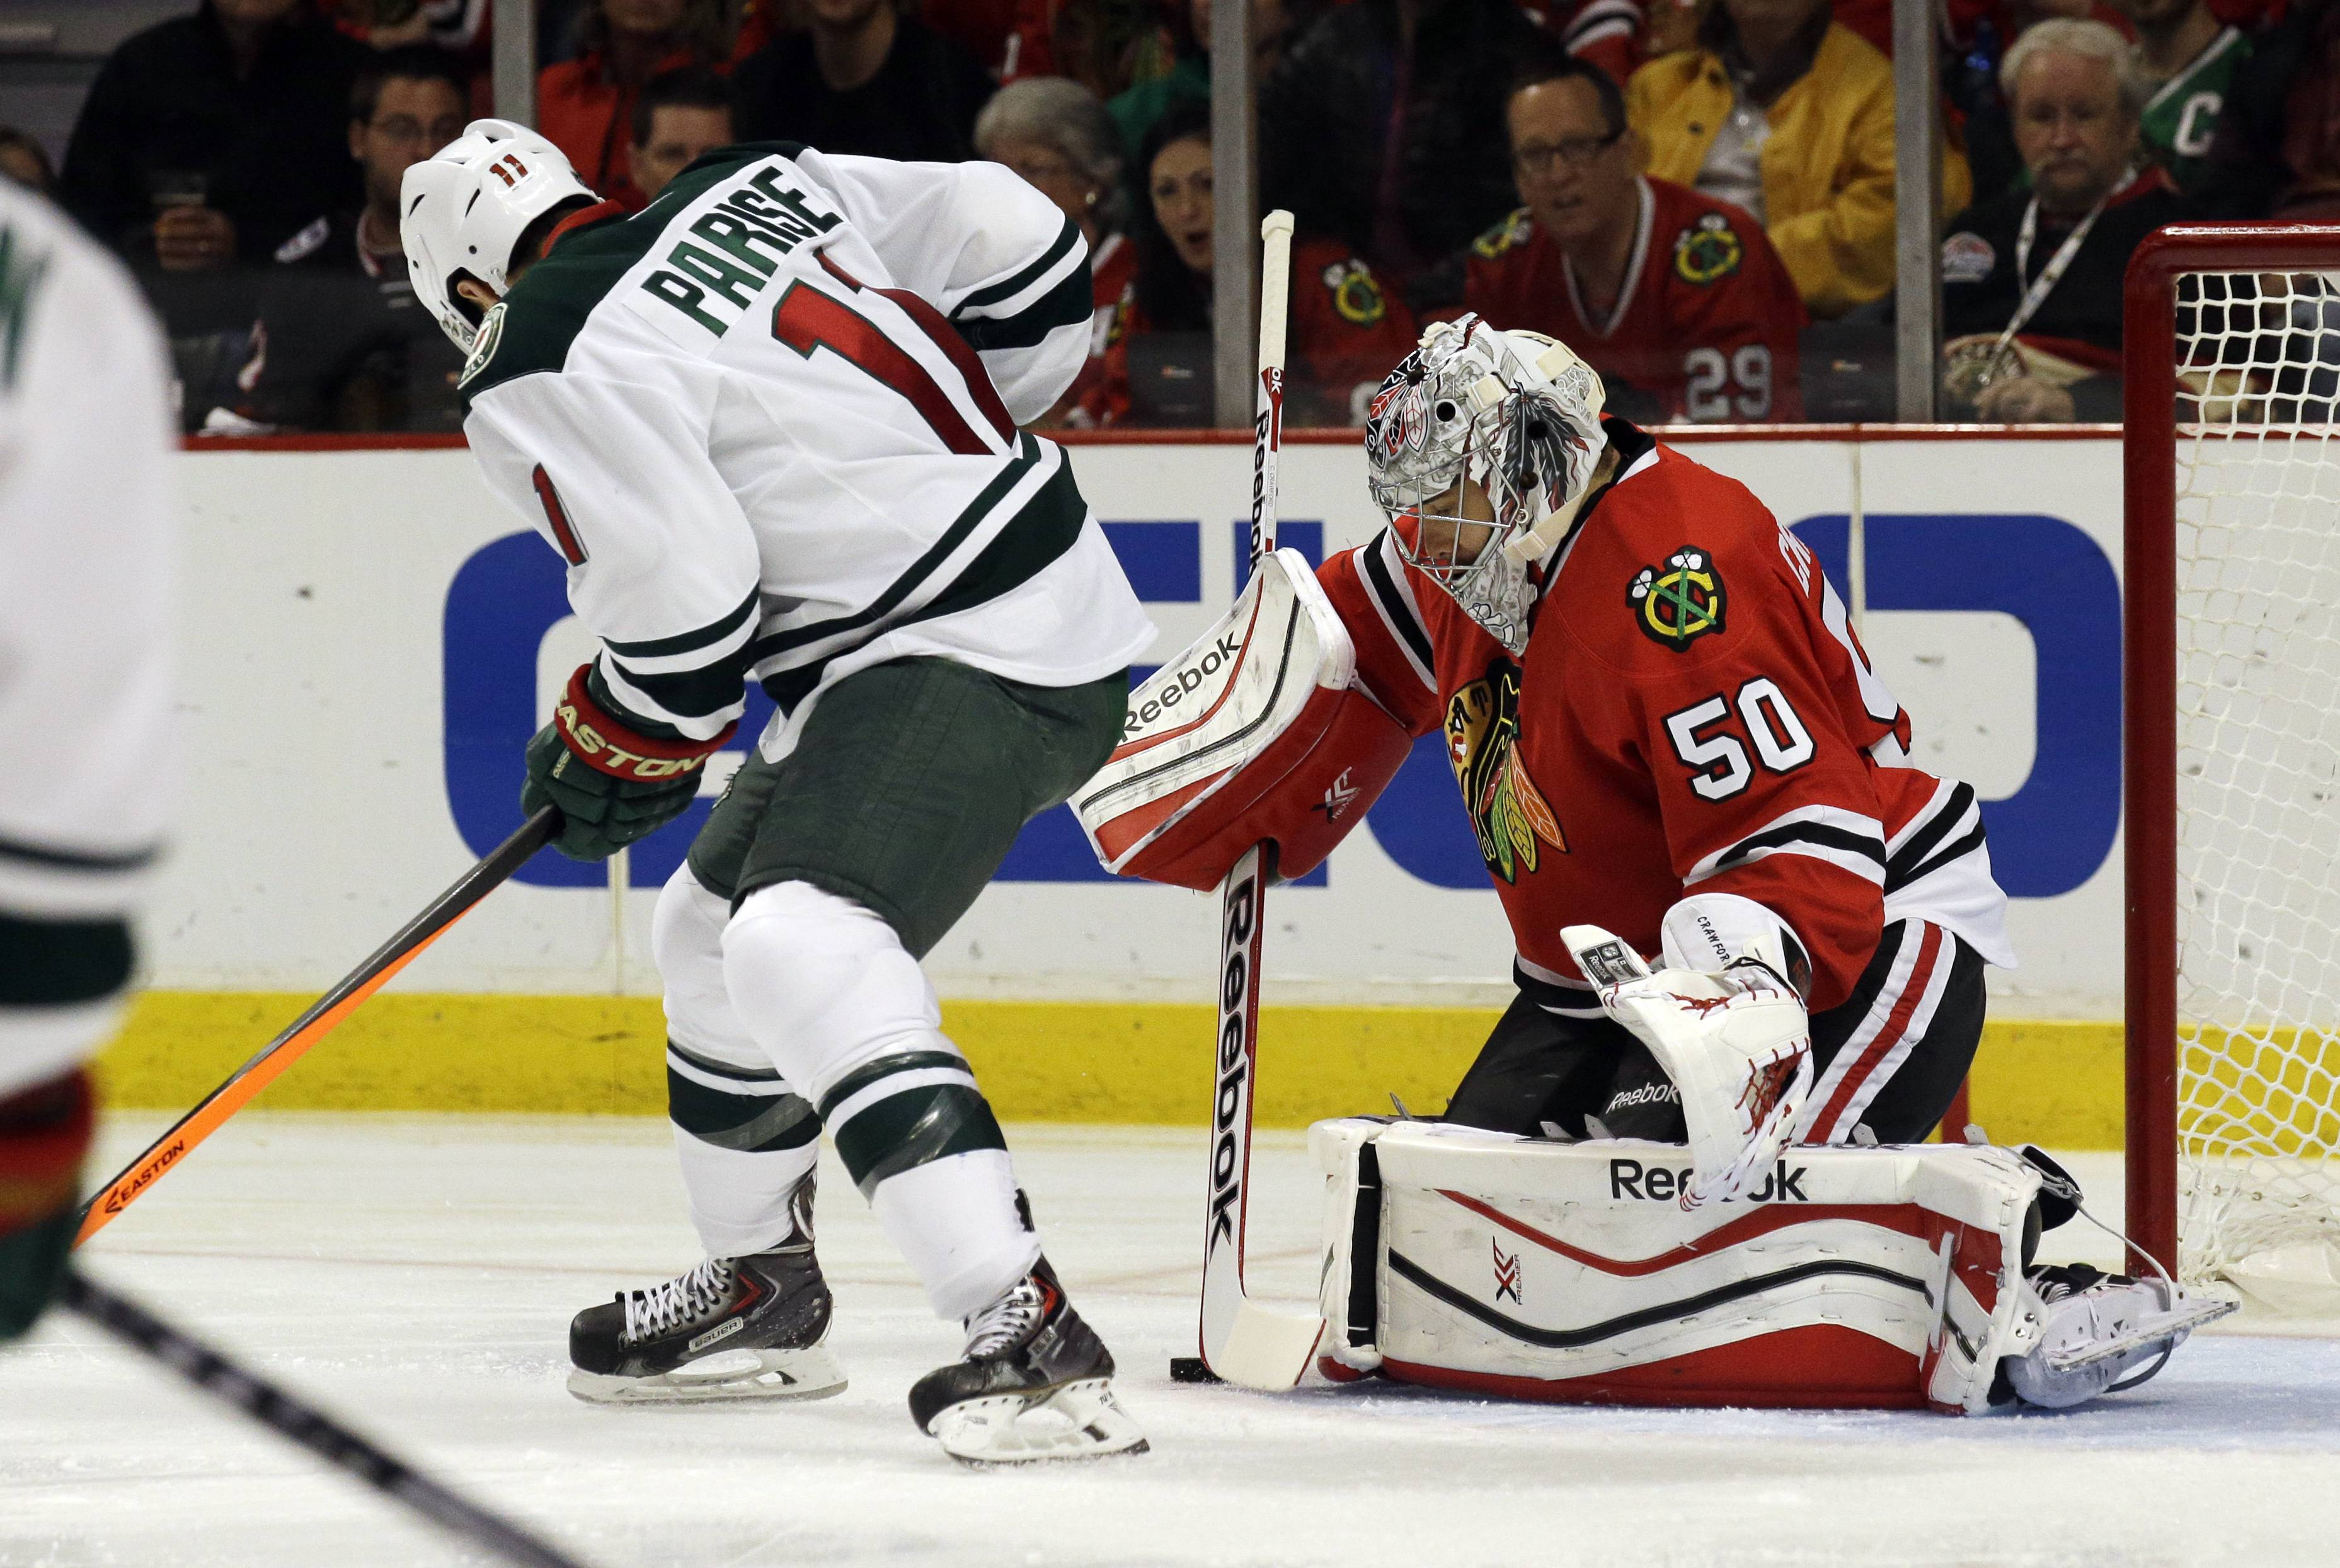 Hawks goalie Corey Crawford blocks a shot by the Wild's Zach Parise during second-round playoff action.